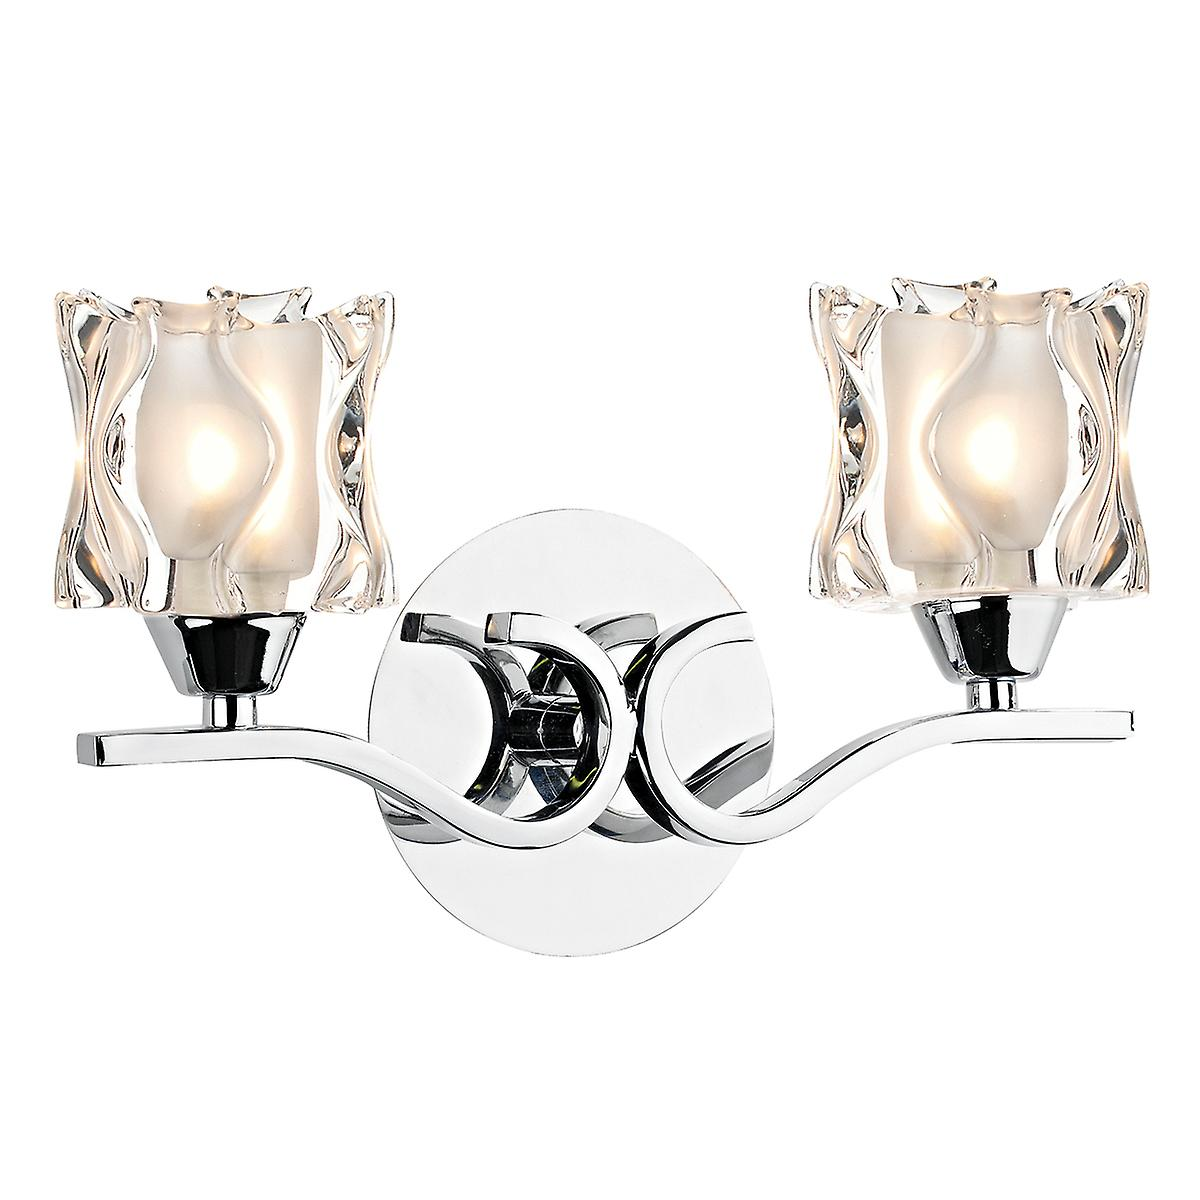 Dar ZOL0950 Zola Modern Double Wall Bracket With A Polished Chrome Finish